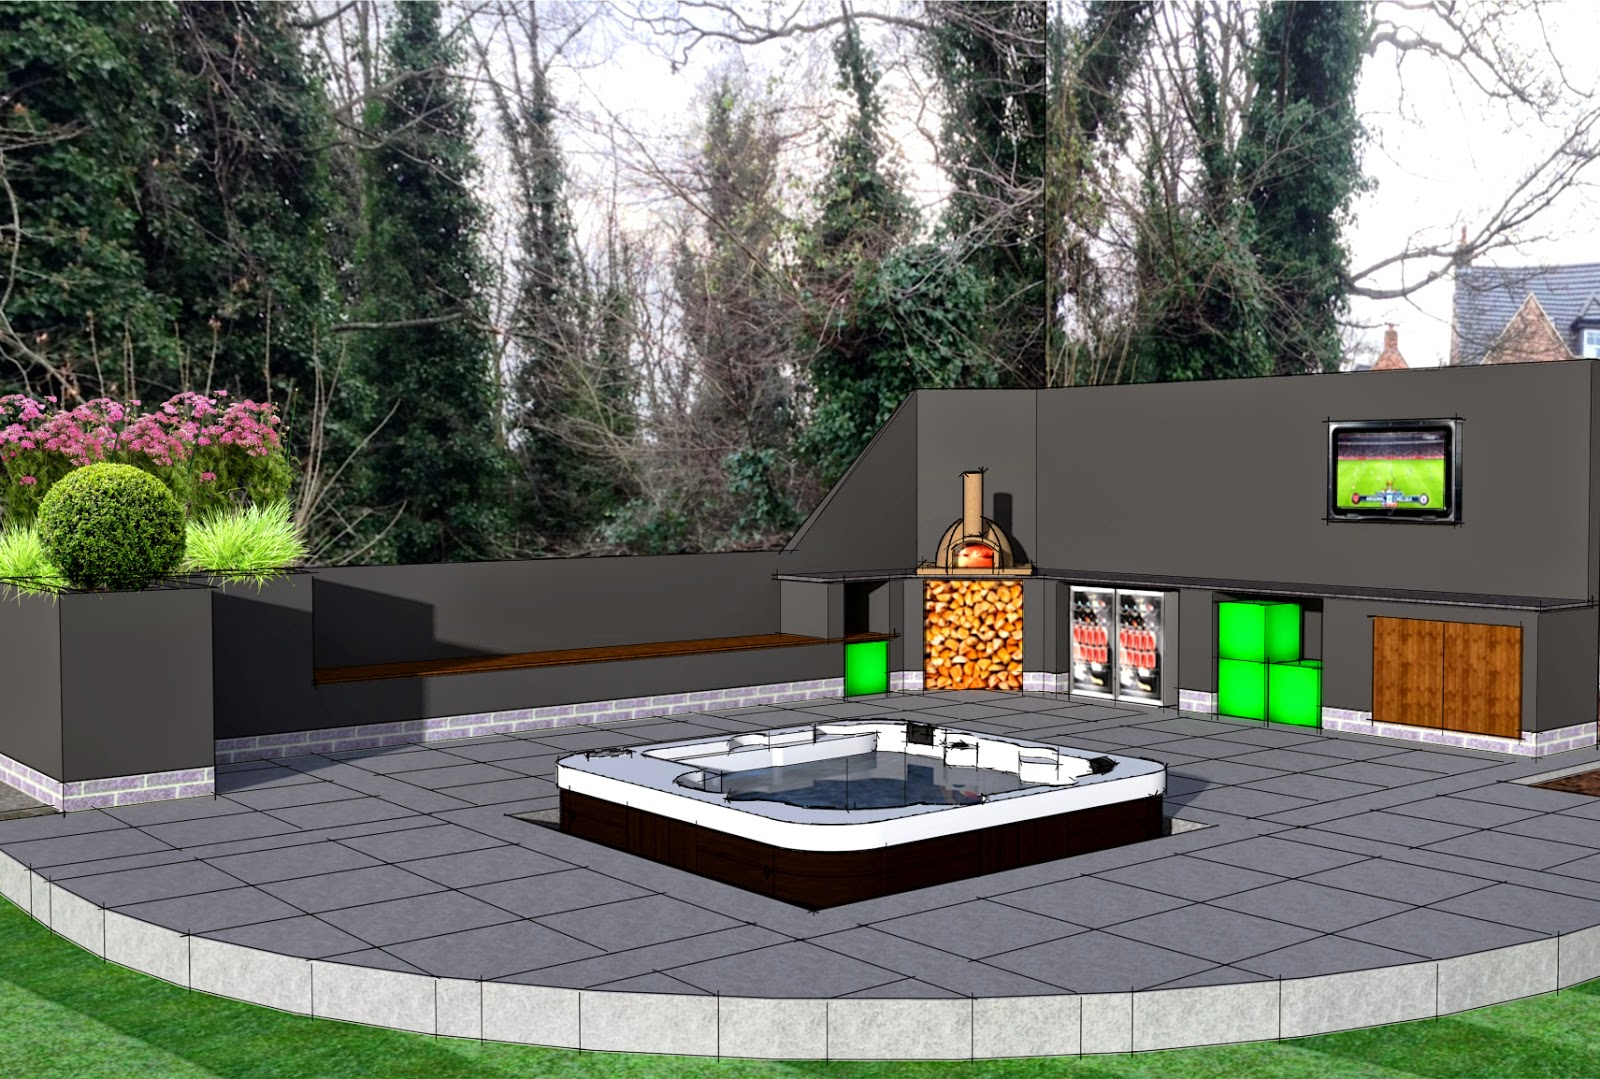 2015 Outdoor Kitchen Area Design With Pizza Oven, Television And ...